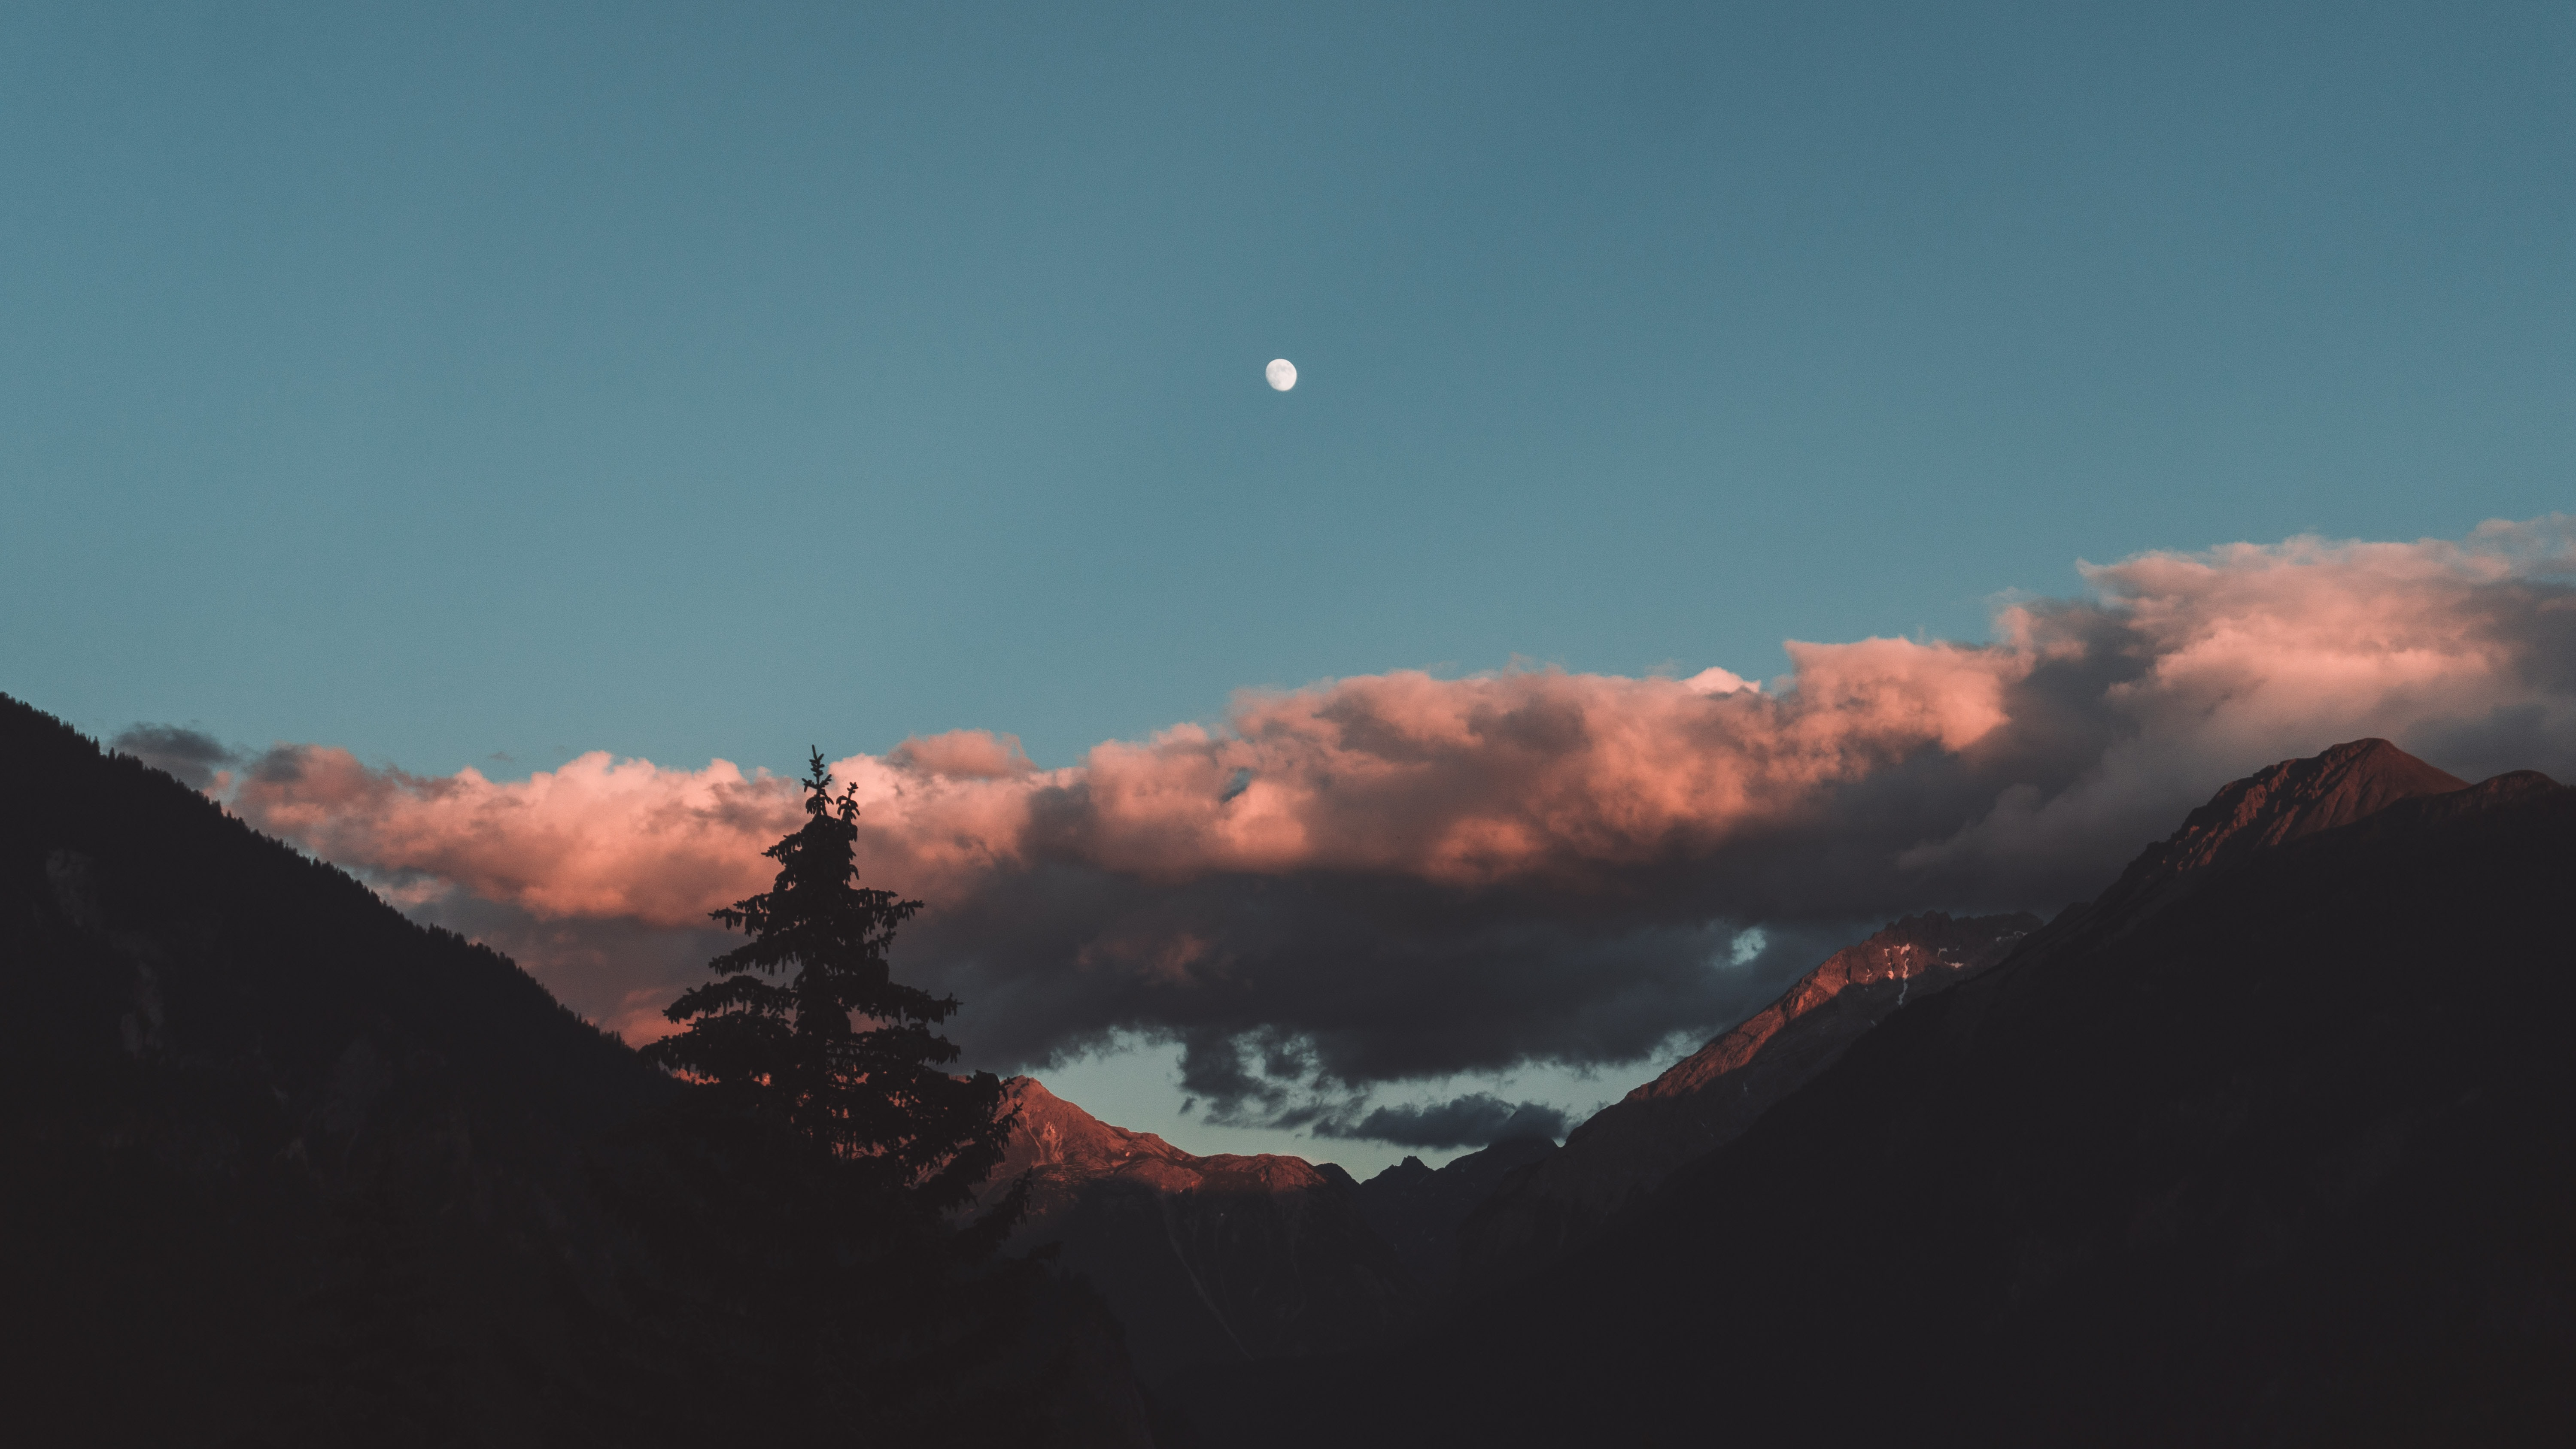 silhouette photo of mountain with clouds